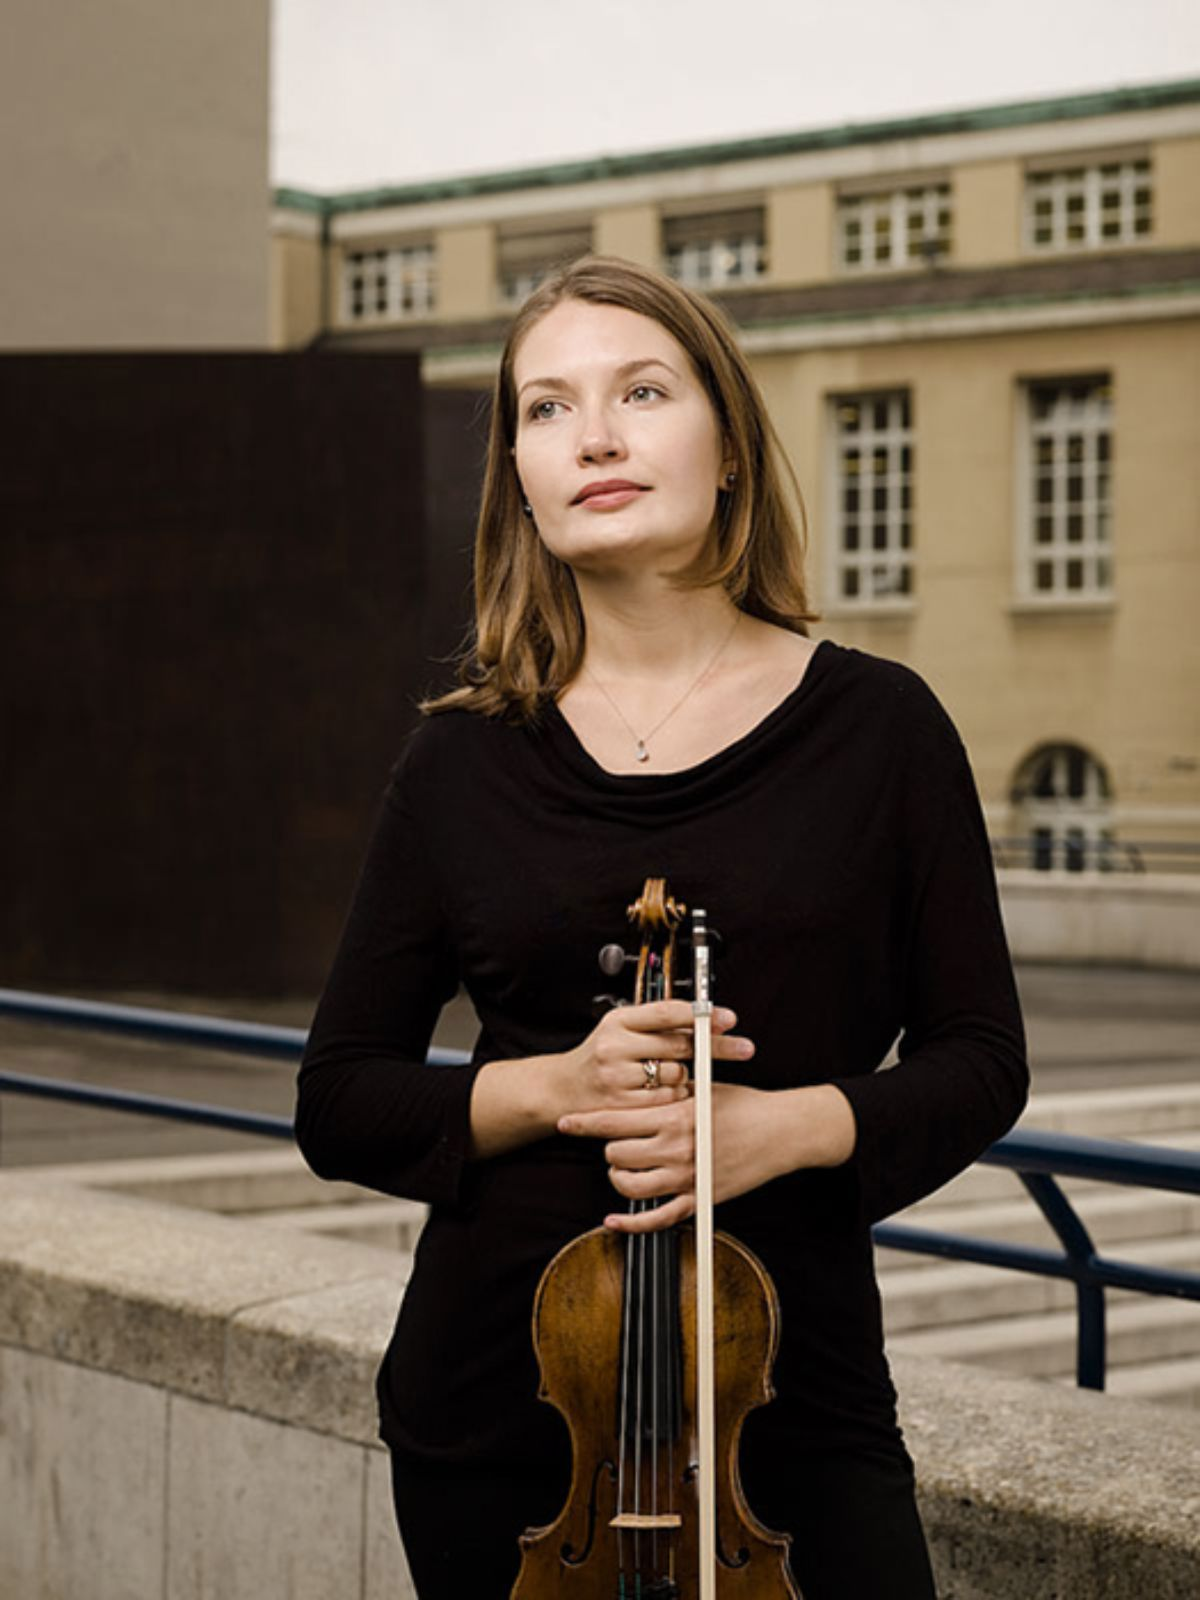 Veronika Durkina, 2. violin